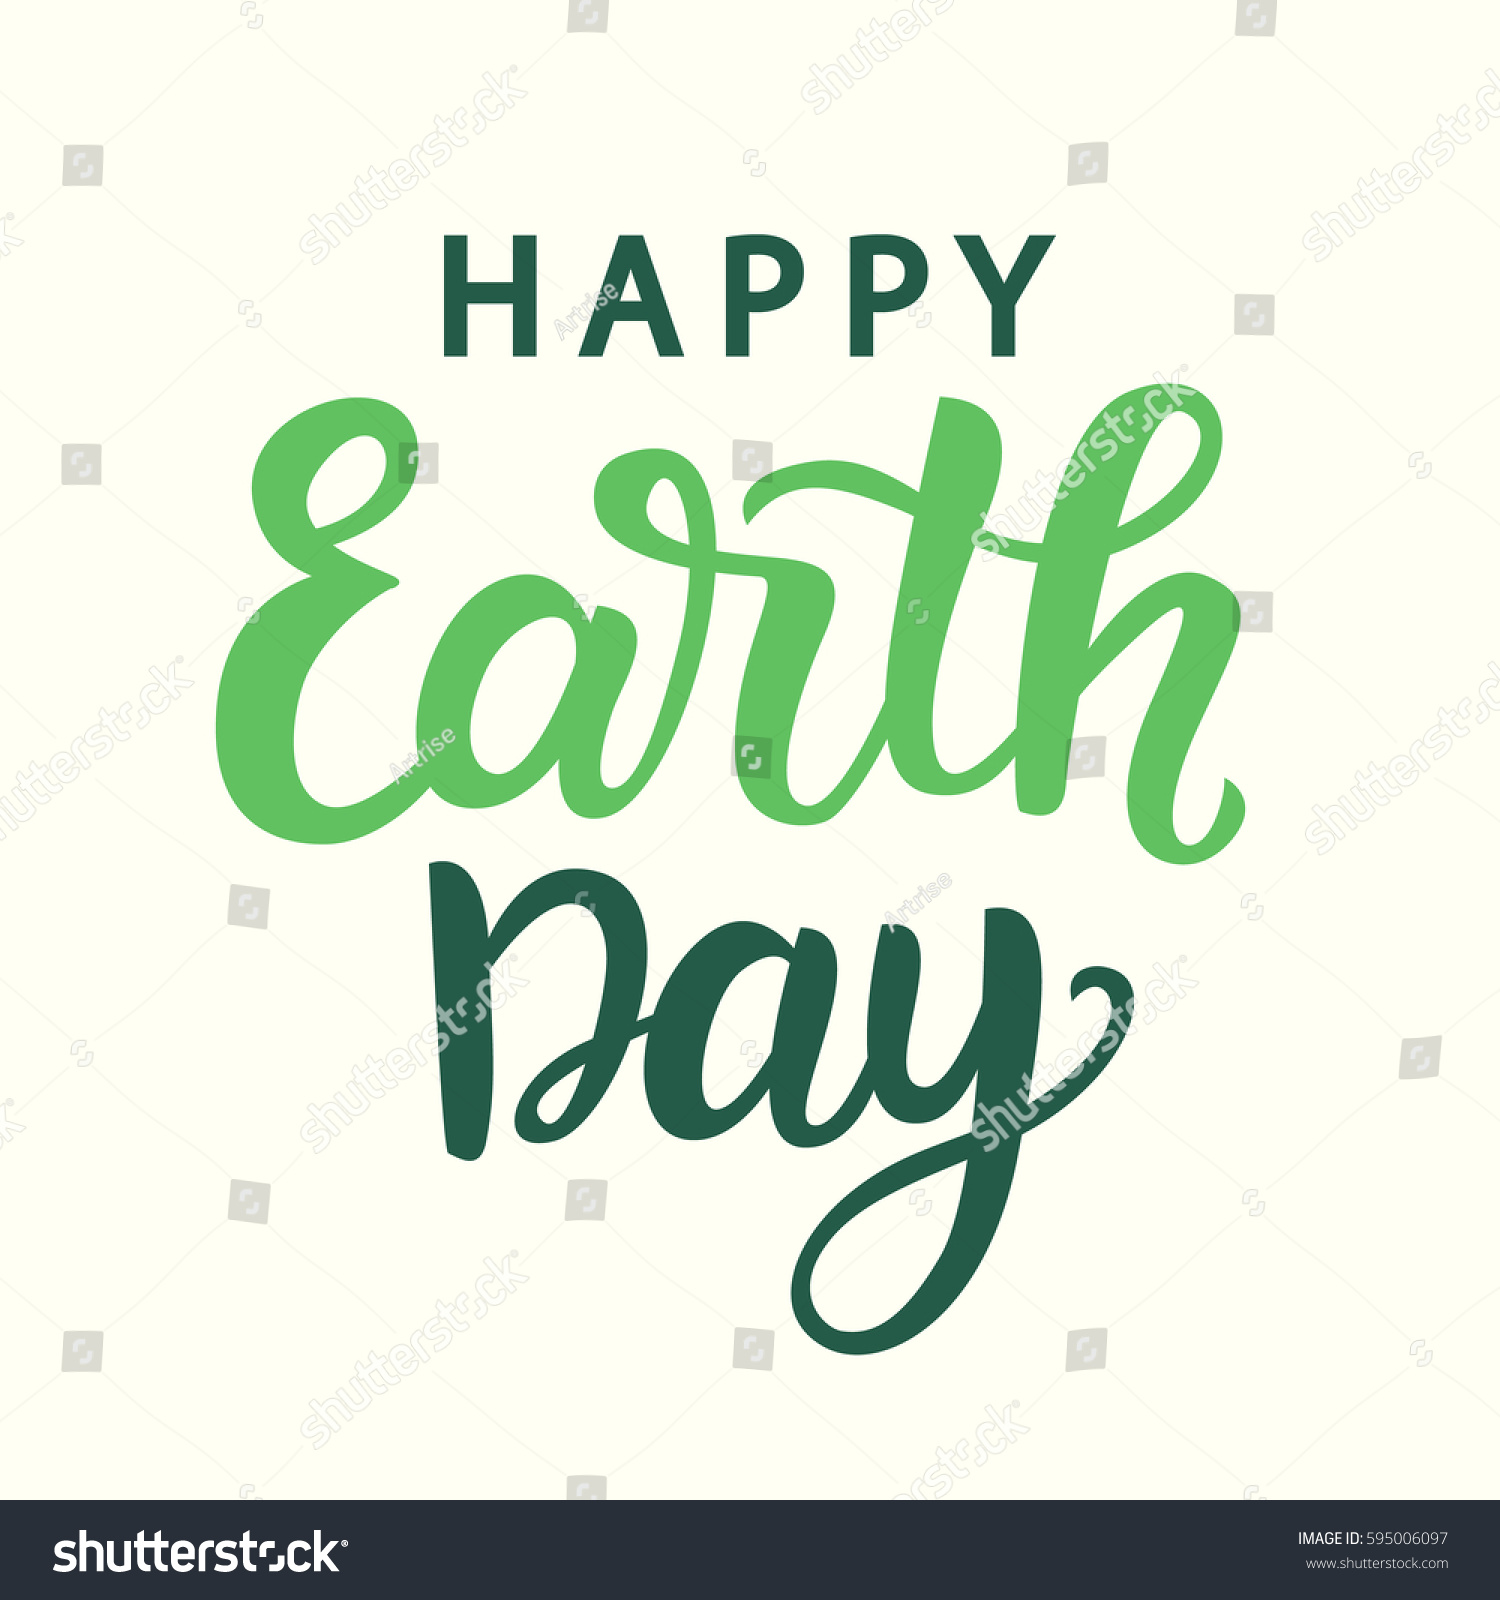 Happy earth day poster hand written stock vector